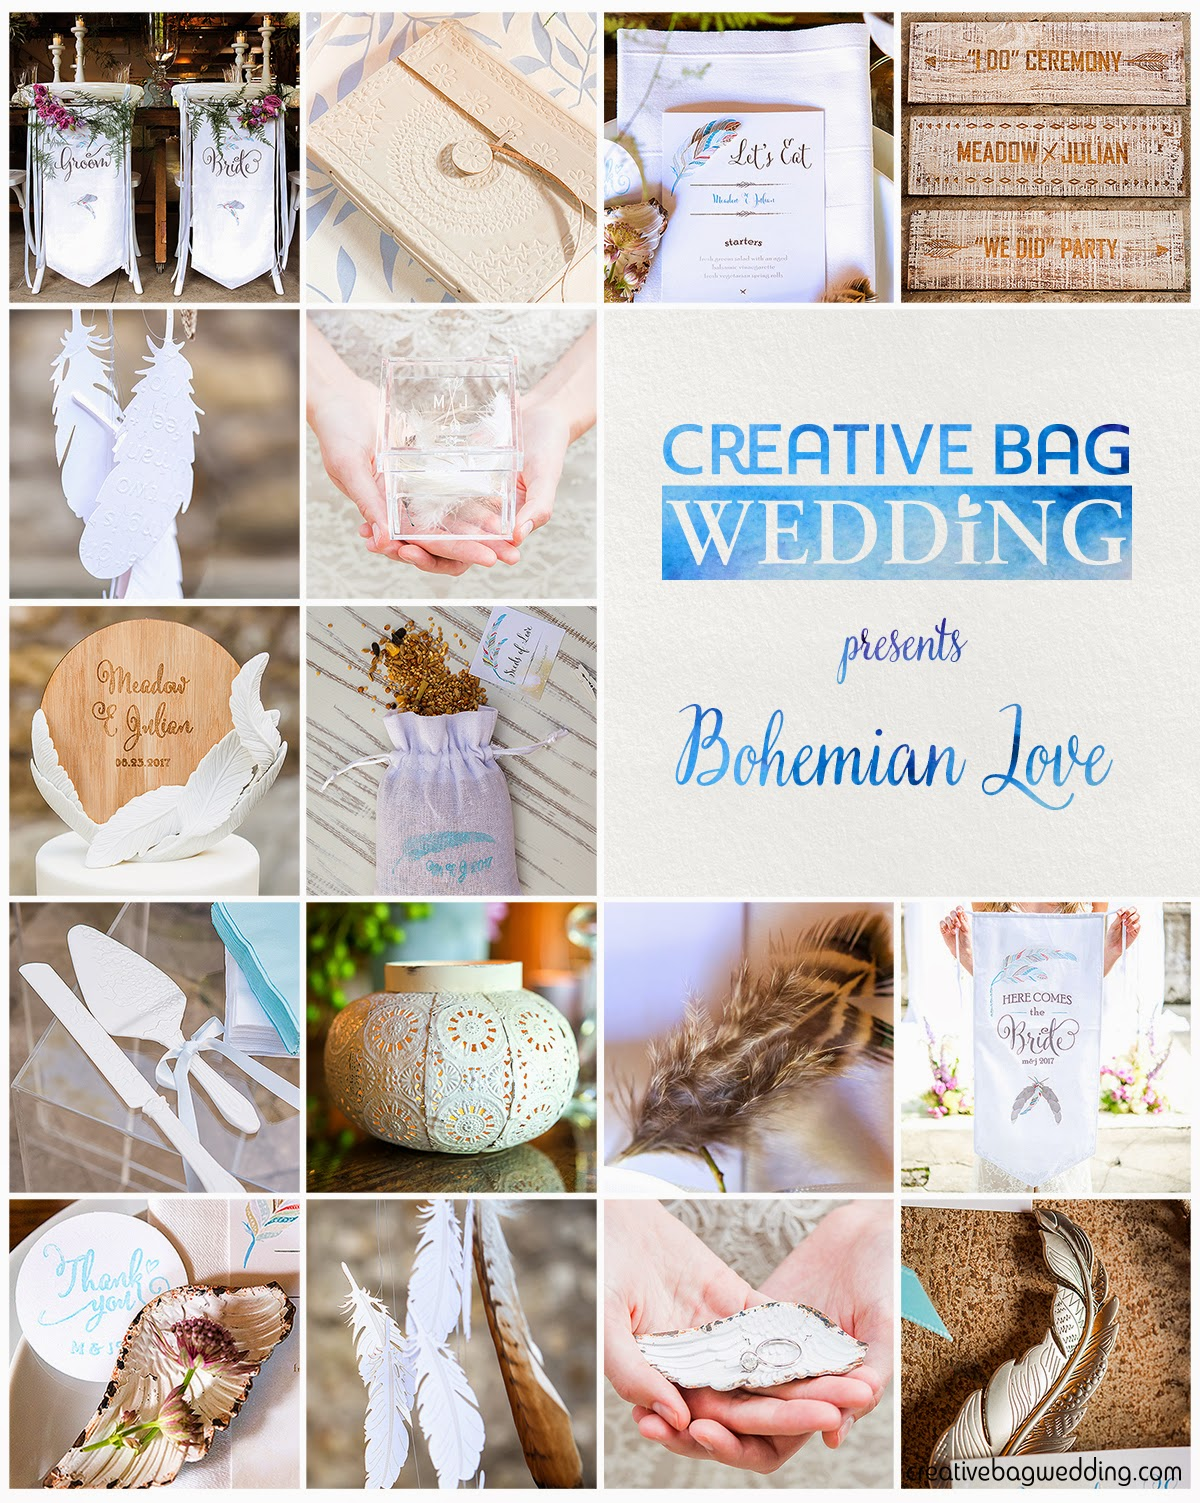 bohemian love mood board | Creative Bag Wedding